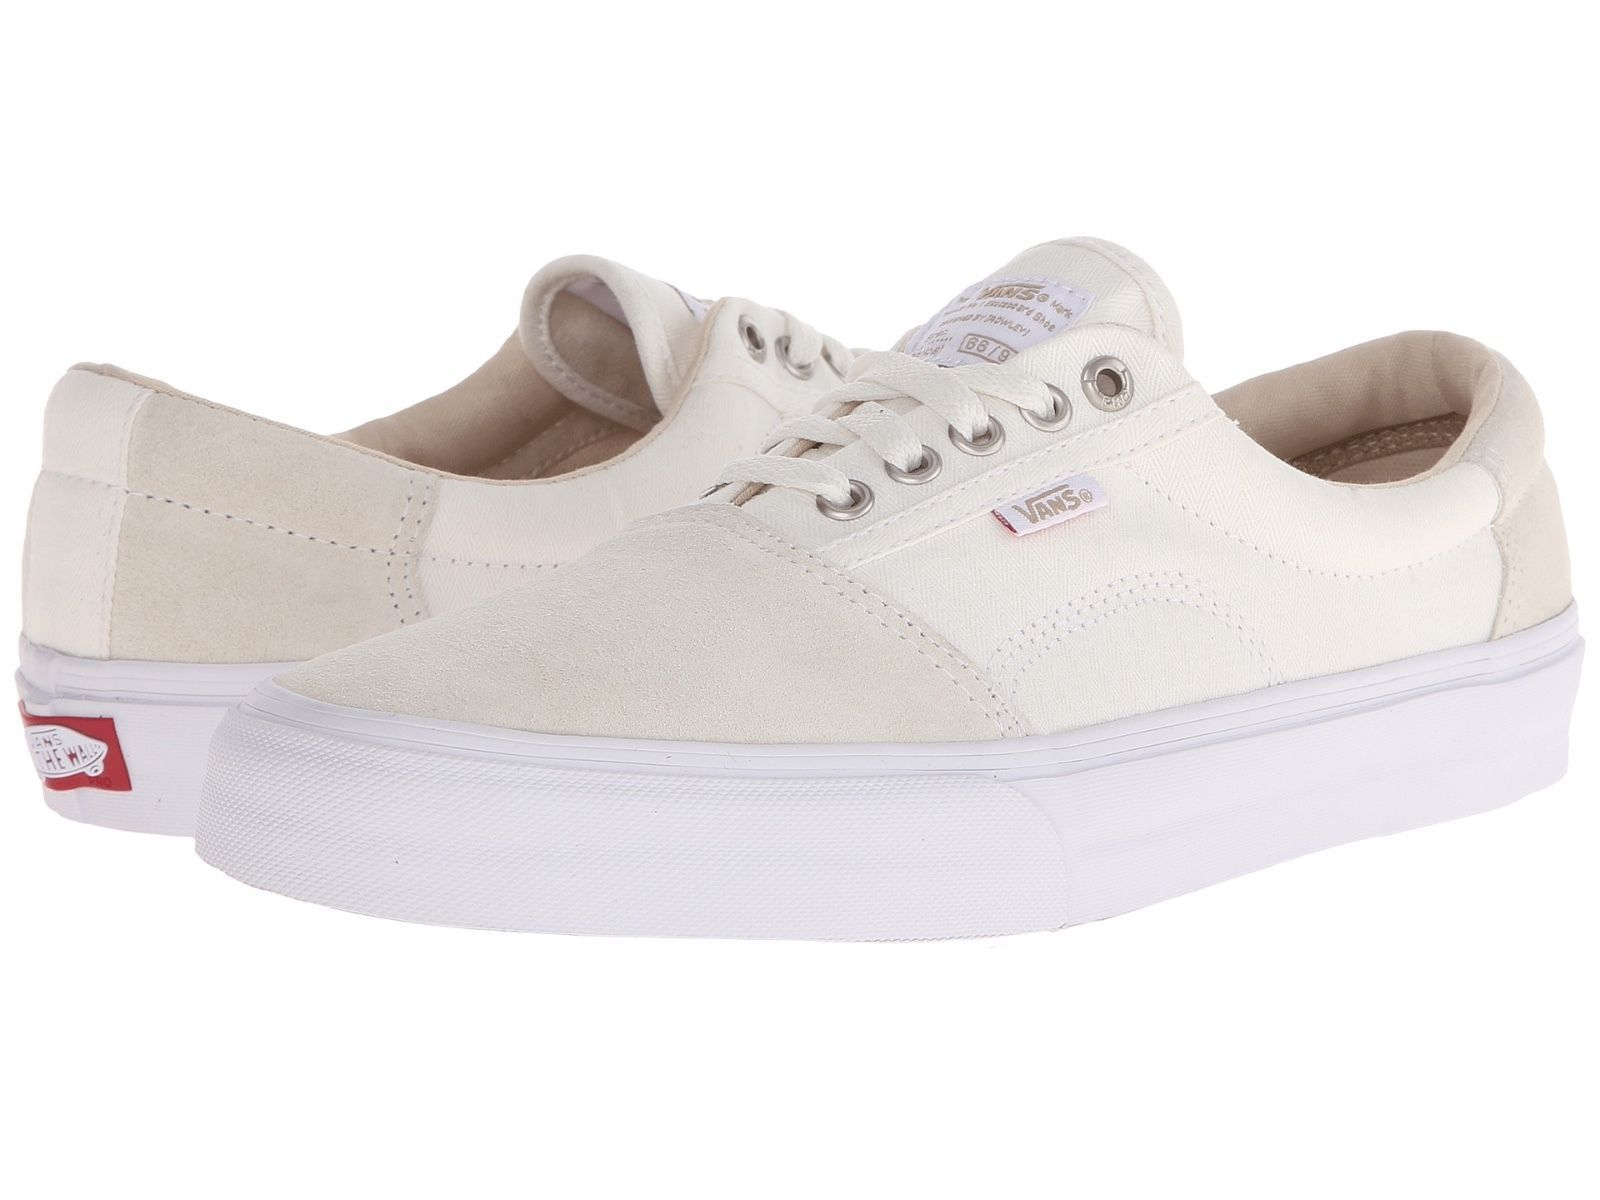 030517e6a6 Vans Shoes Rowley Solos Herringbone White and 50 similar items